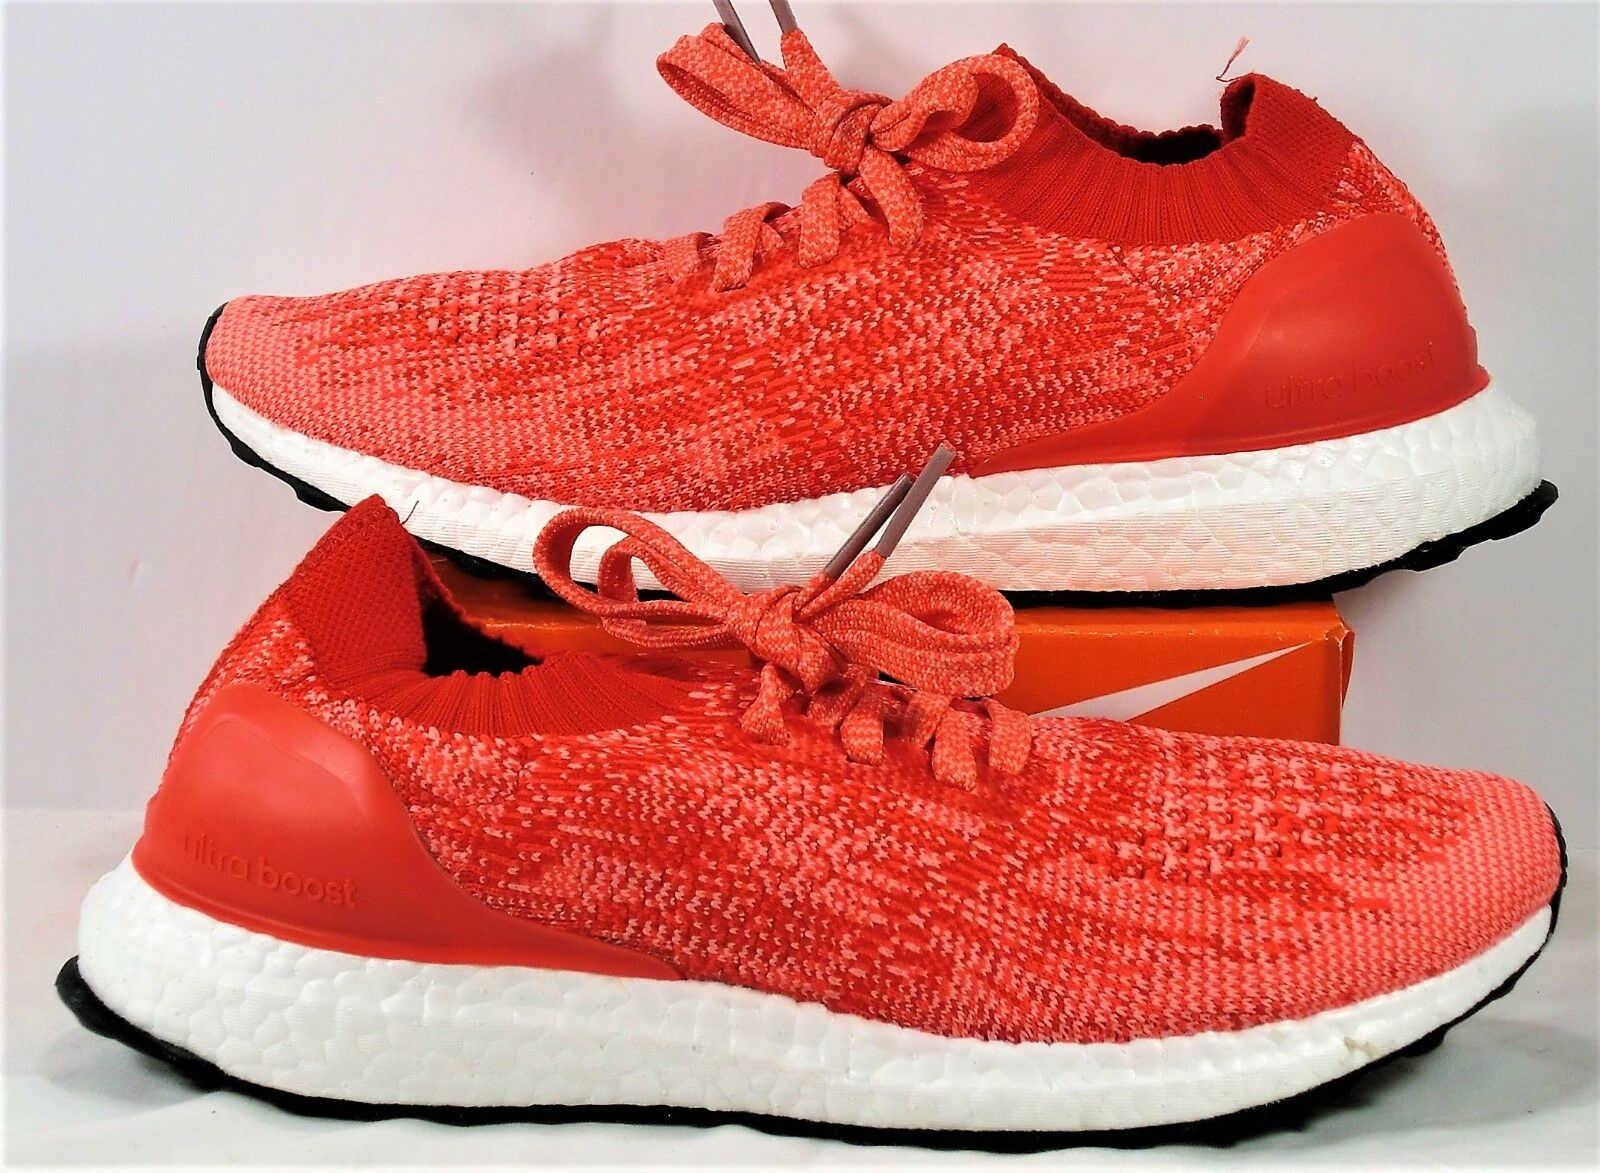 Adidas Ultra Boost Uncaged Ray Red & Shock Pink Running Shoes Sz 6.5Y NEW BA8296